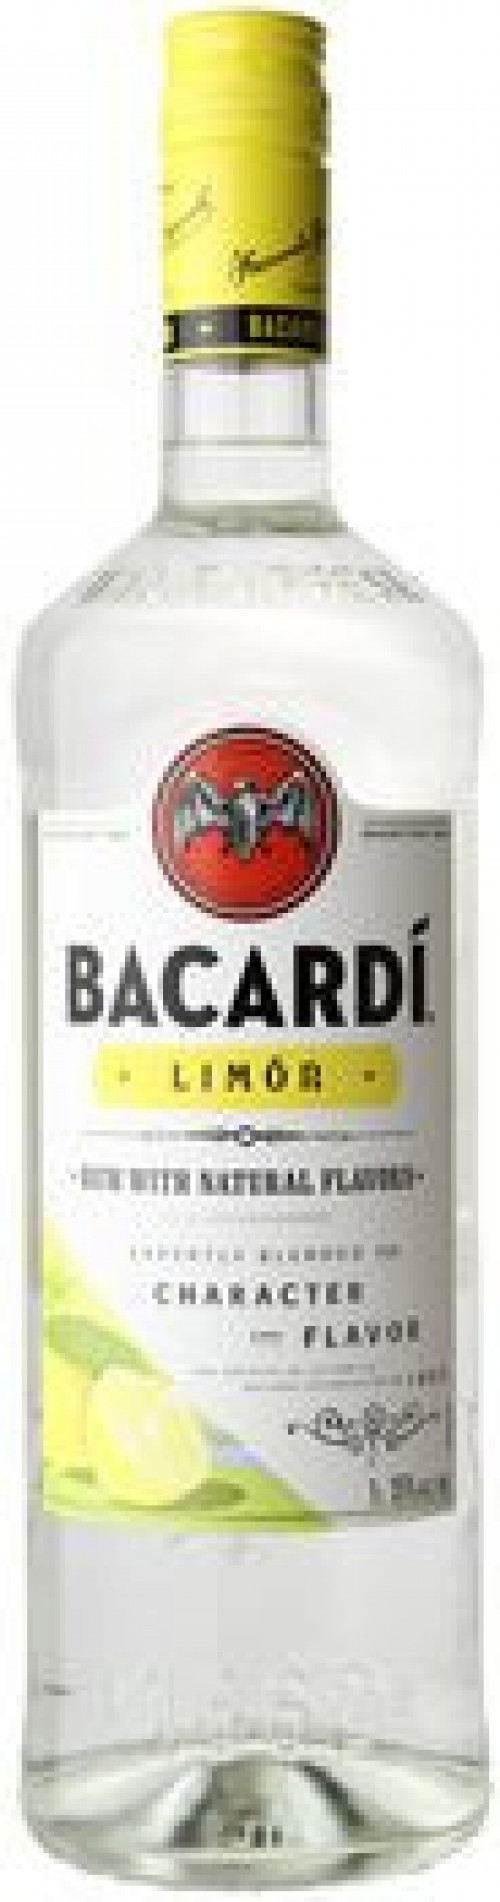 Bacardi Limon Flavored Rum 1L